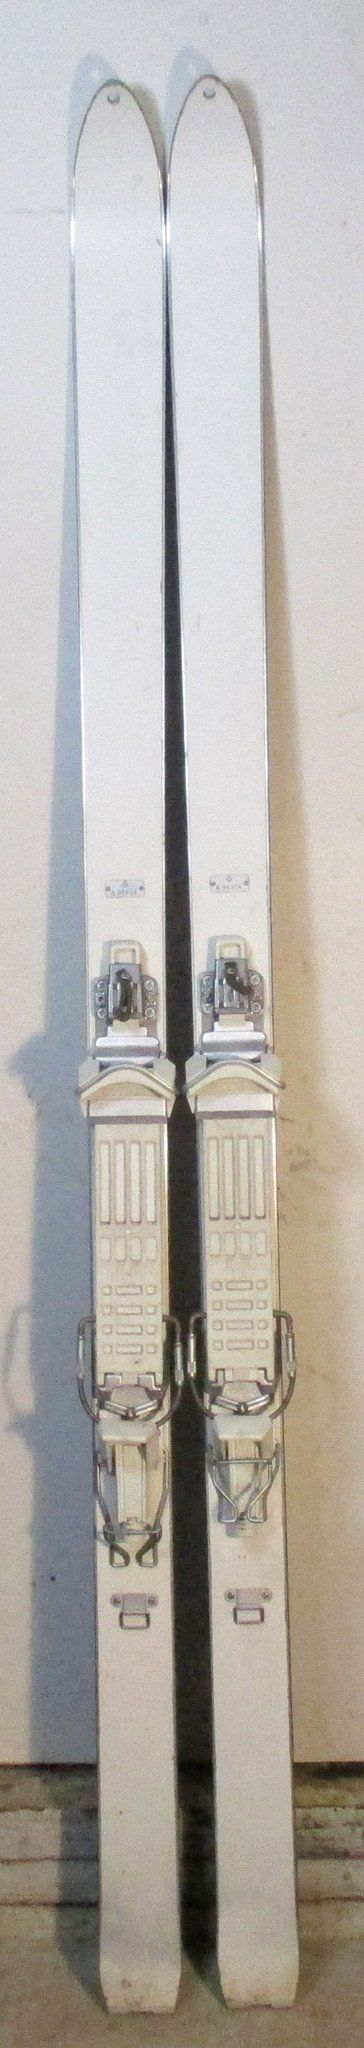 Swiss Army Snow Skis For Sale 185cm Excellent Condition w/Alpine Touring Fritschi FT-88 Bindings